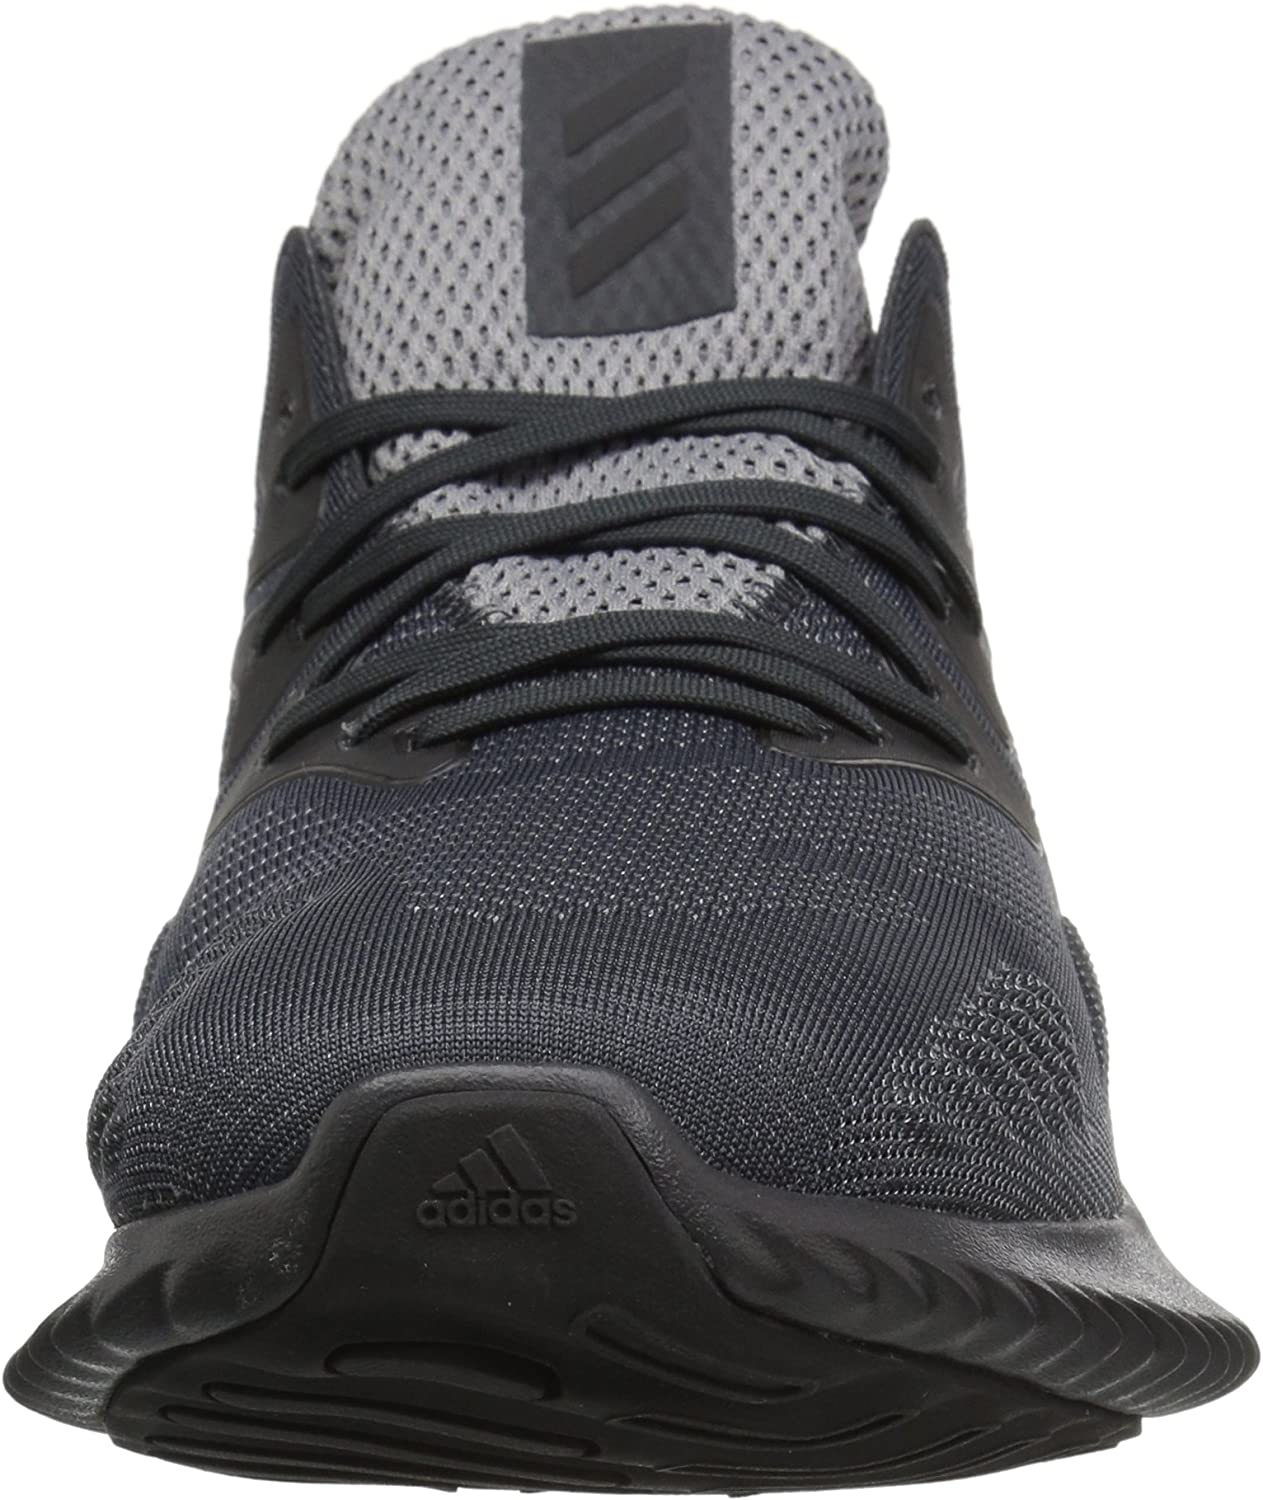 adidas Alphabounce Beyond m Running Shoe Grey Four/Carbon/Dark Solid Grey